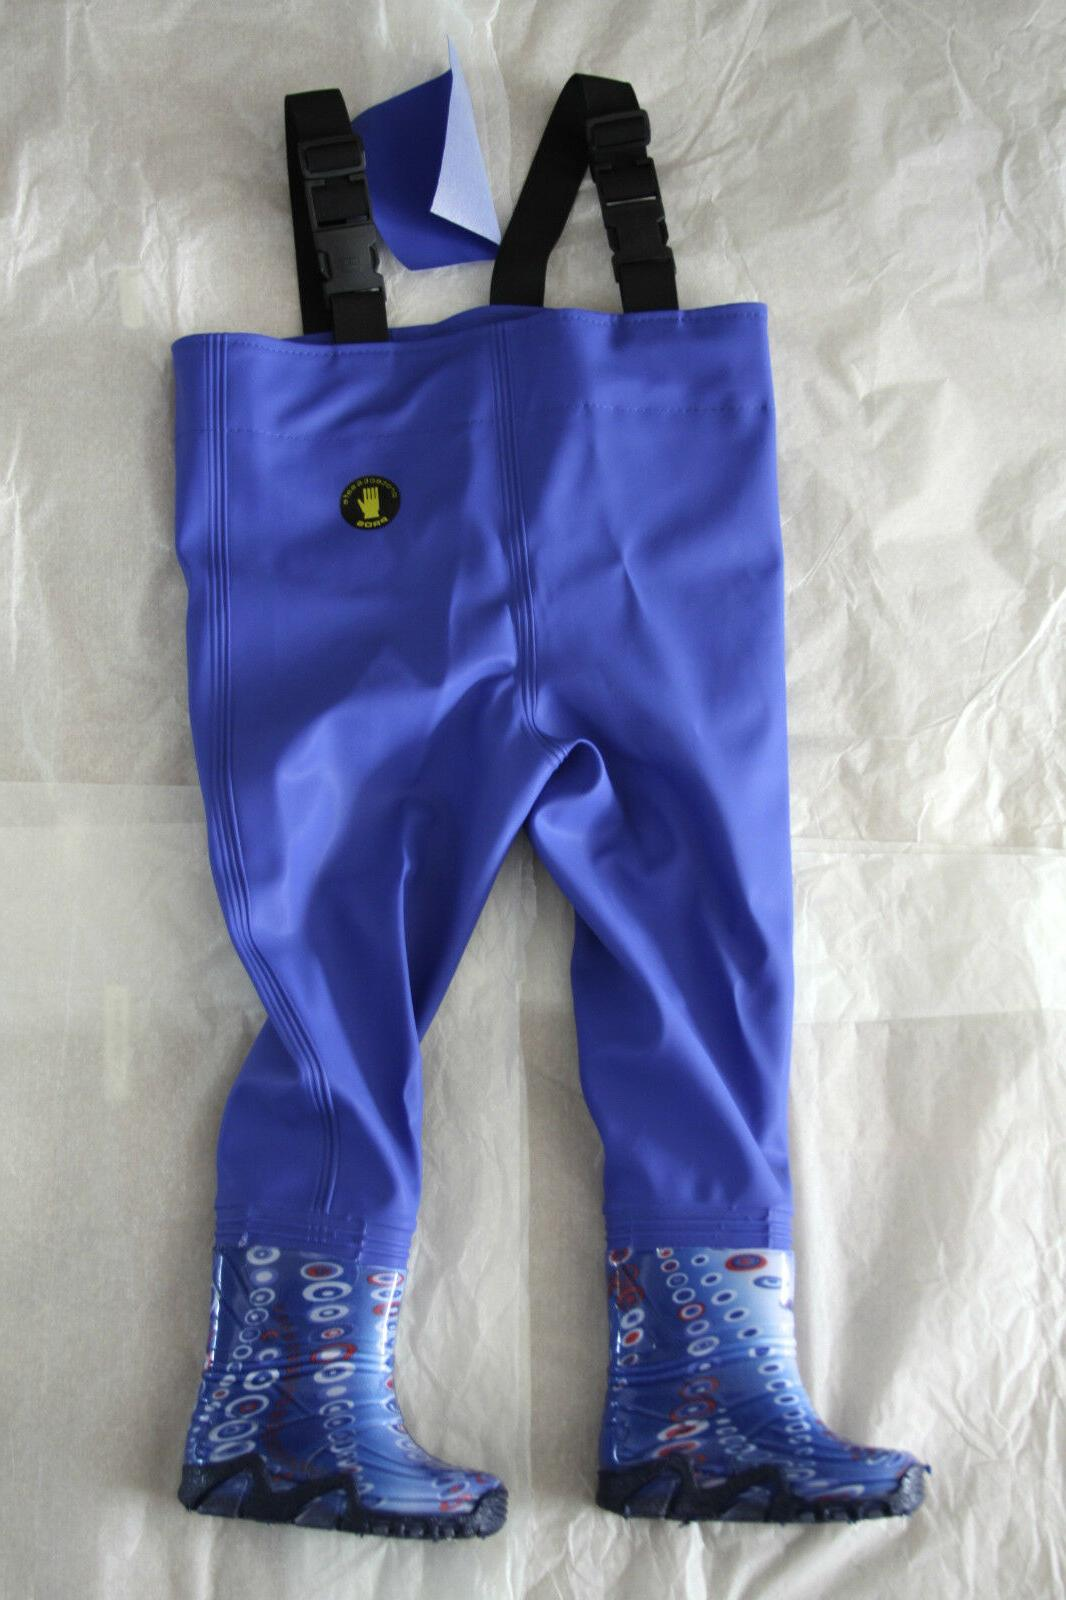 Kids Waders, Fishing Chest Waders, Boots,